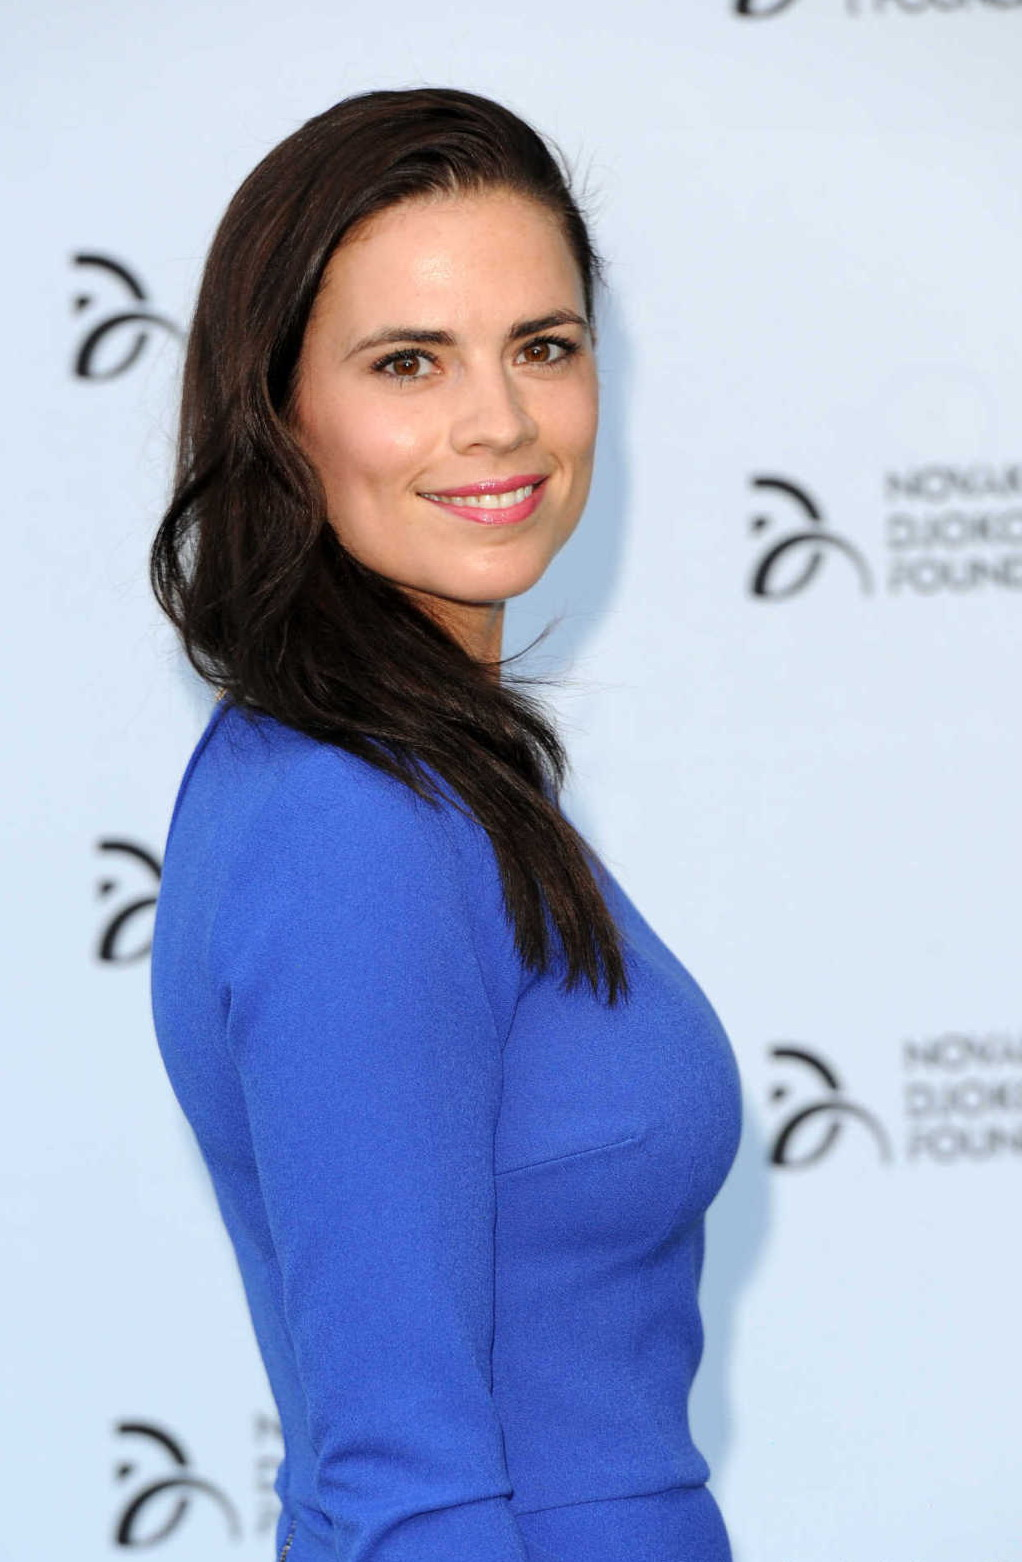 Hayley Atwell In A Blue Dress For The Novak Djokovic Gala In London High Resolution Pictures Hayley atwell and tom cruise on the set of mission impossible 7 in rome 11/26/2020. high resolution pictures blogger